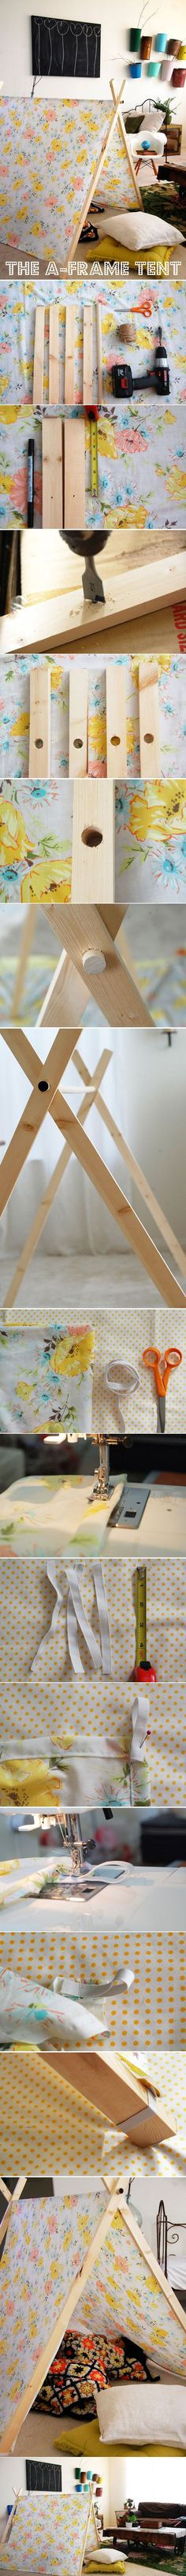 "A frame tent. Add dowels to the bottoms & fabric ""floor""  to make it sturdier"